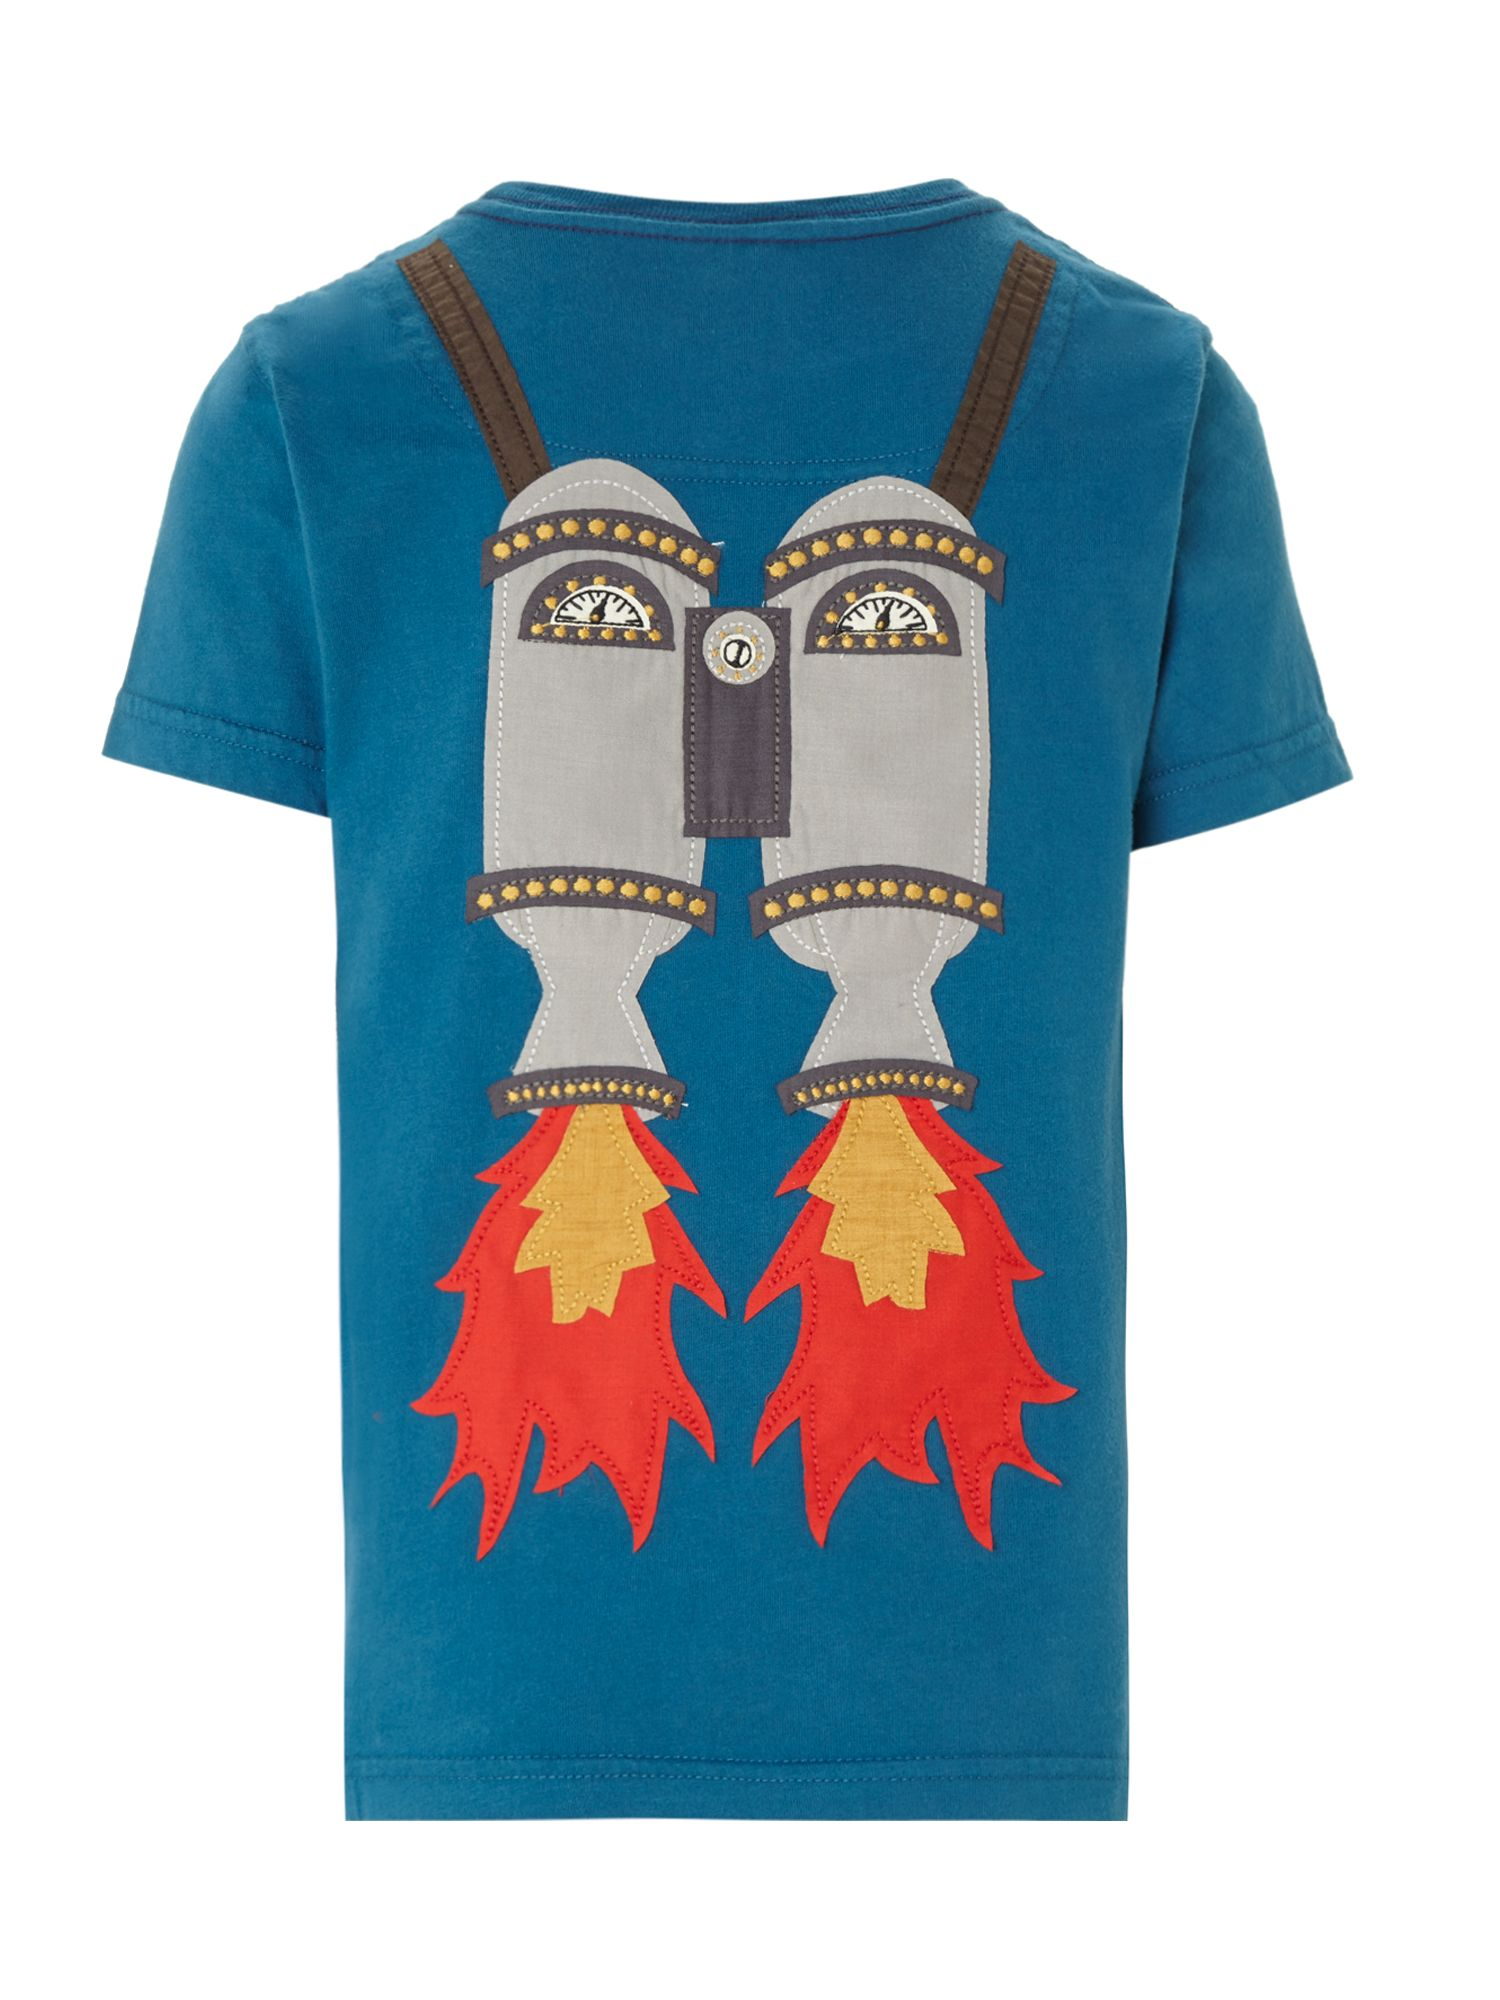 Boys rocket pack t-shirt